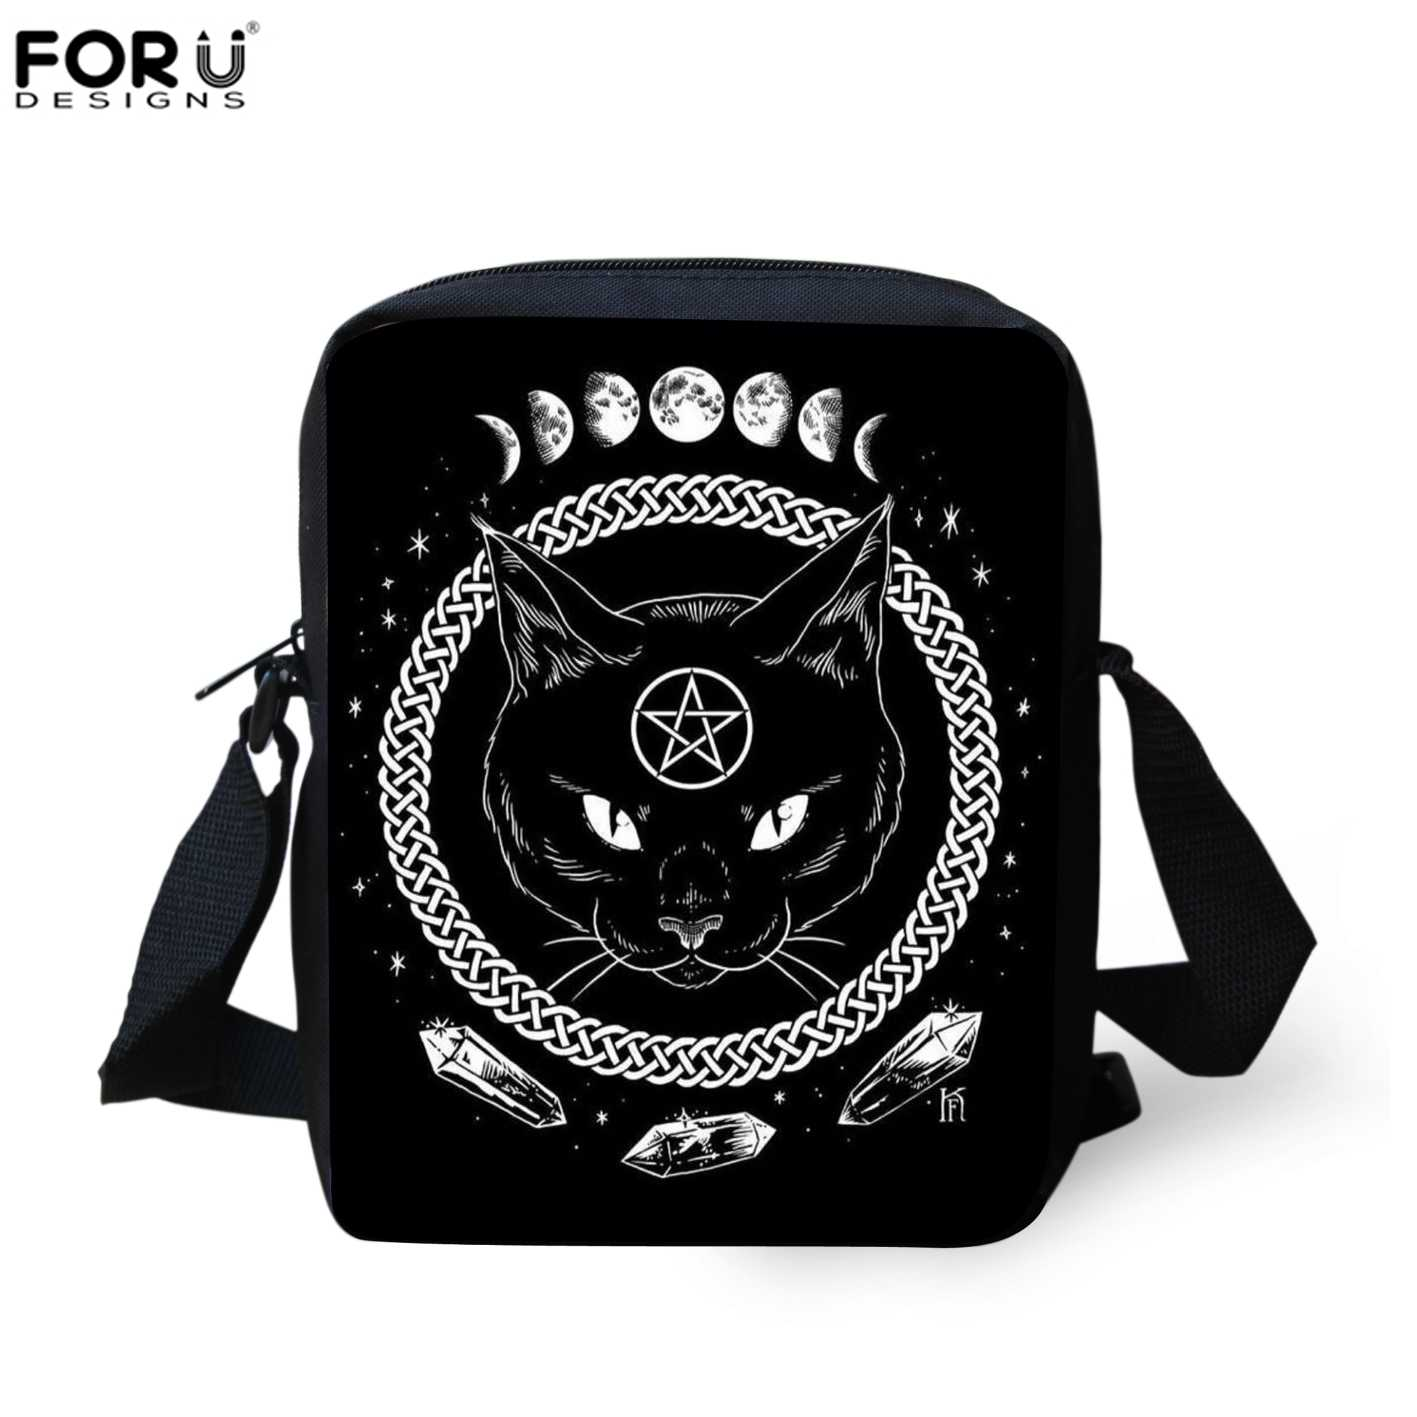 9a6475a7cf Detail Feedback Questions about FORUDESIGNS Gothic Moon Phase Witchcraft Cat  Crossbody Bag Women Men Travel Messenger Bags Pouch Coin Phone Purse ...